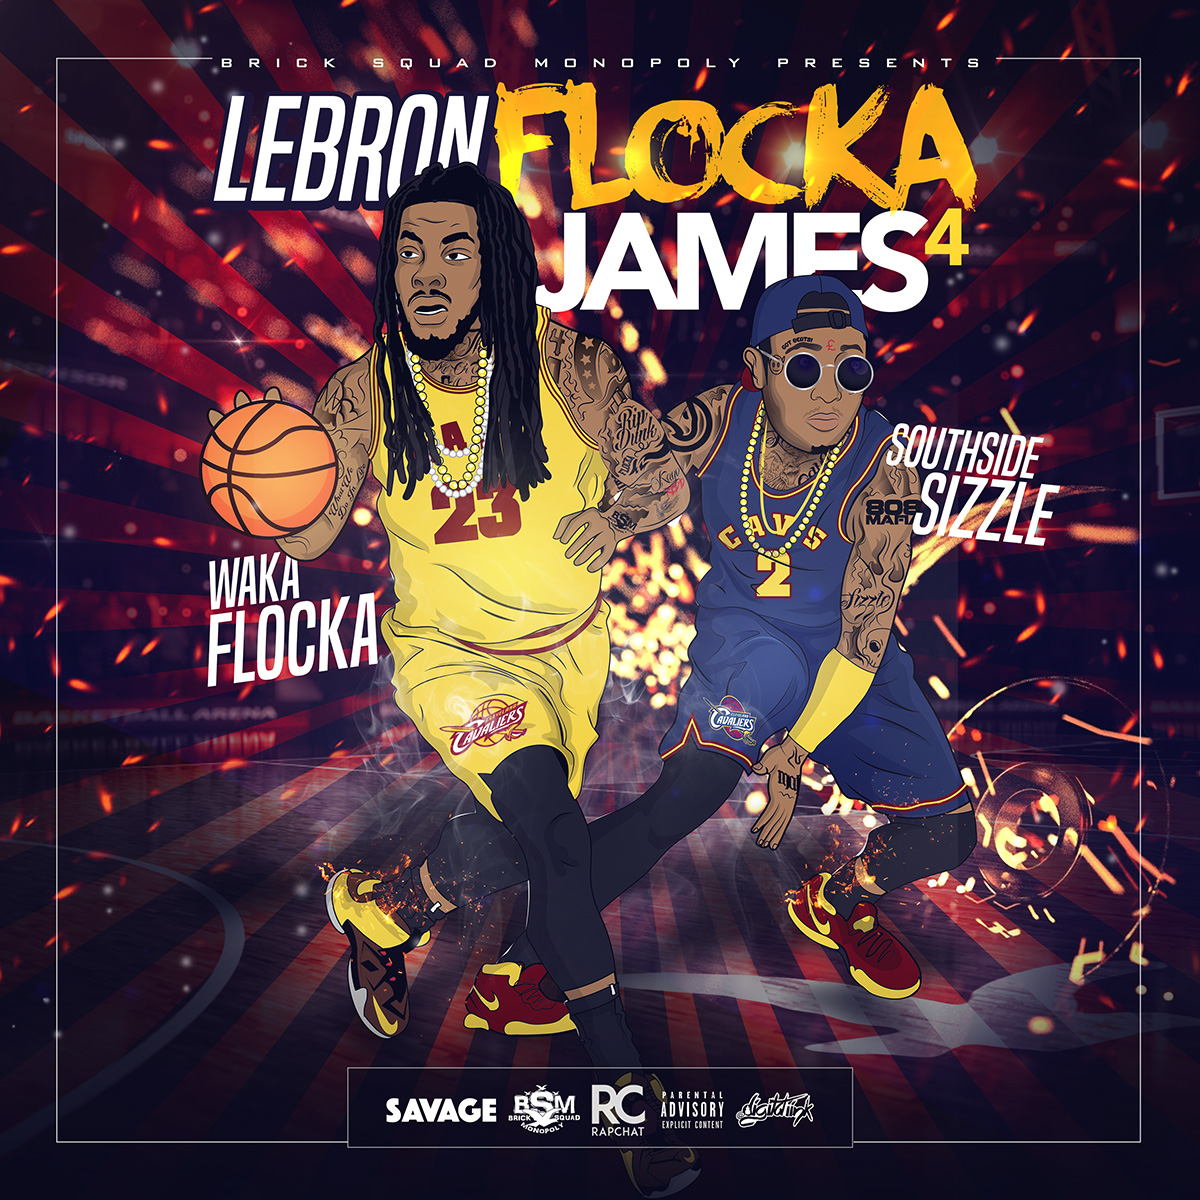 Walka Flocka and Southside Release 'Waka Flocka James 4' Mixtape